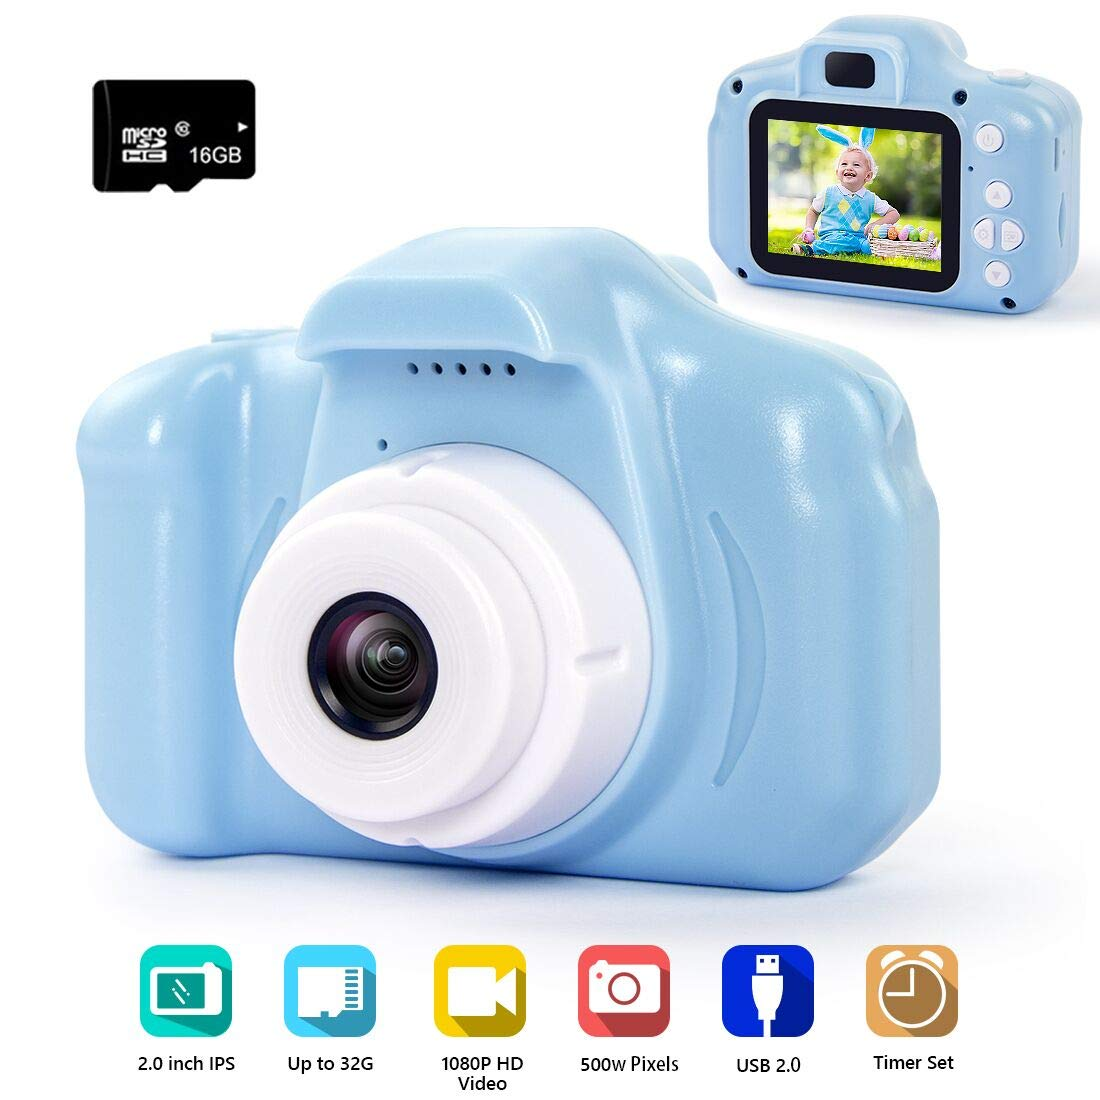 hyleton Digital Camera for Kids, 1080P FHD Kids Digital Video Camera with 2 Inch IPS Screen and 16GB SD Card for 3-10 Years Boys Girls Gift (Light Blue) by hyleton